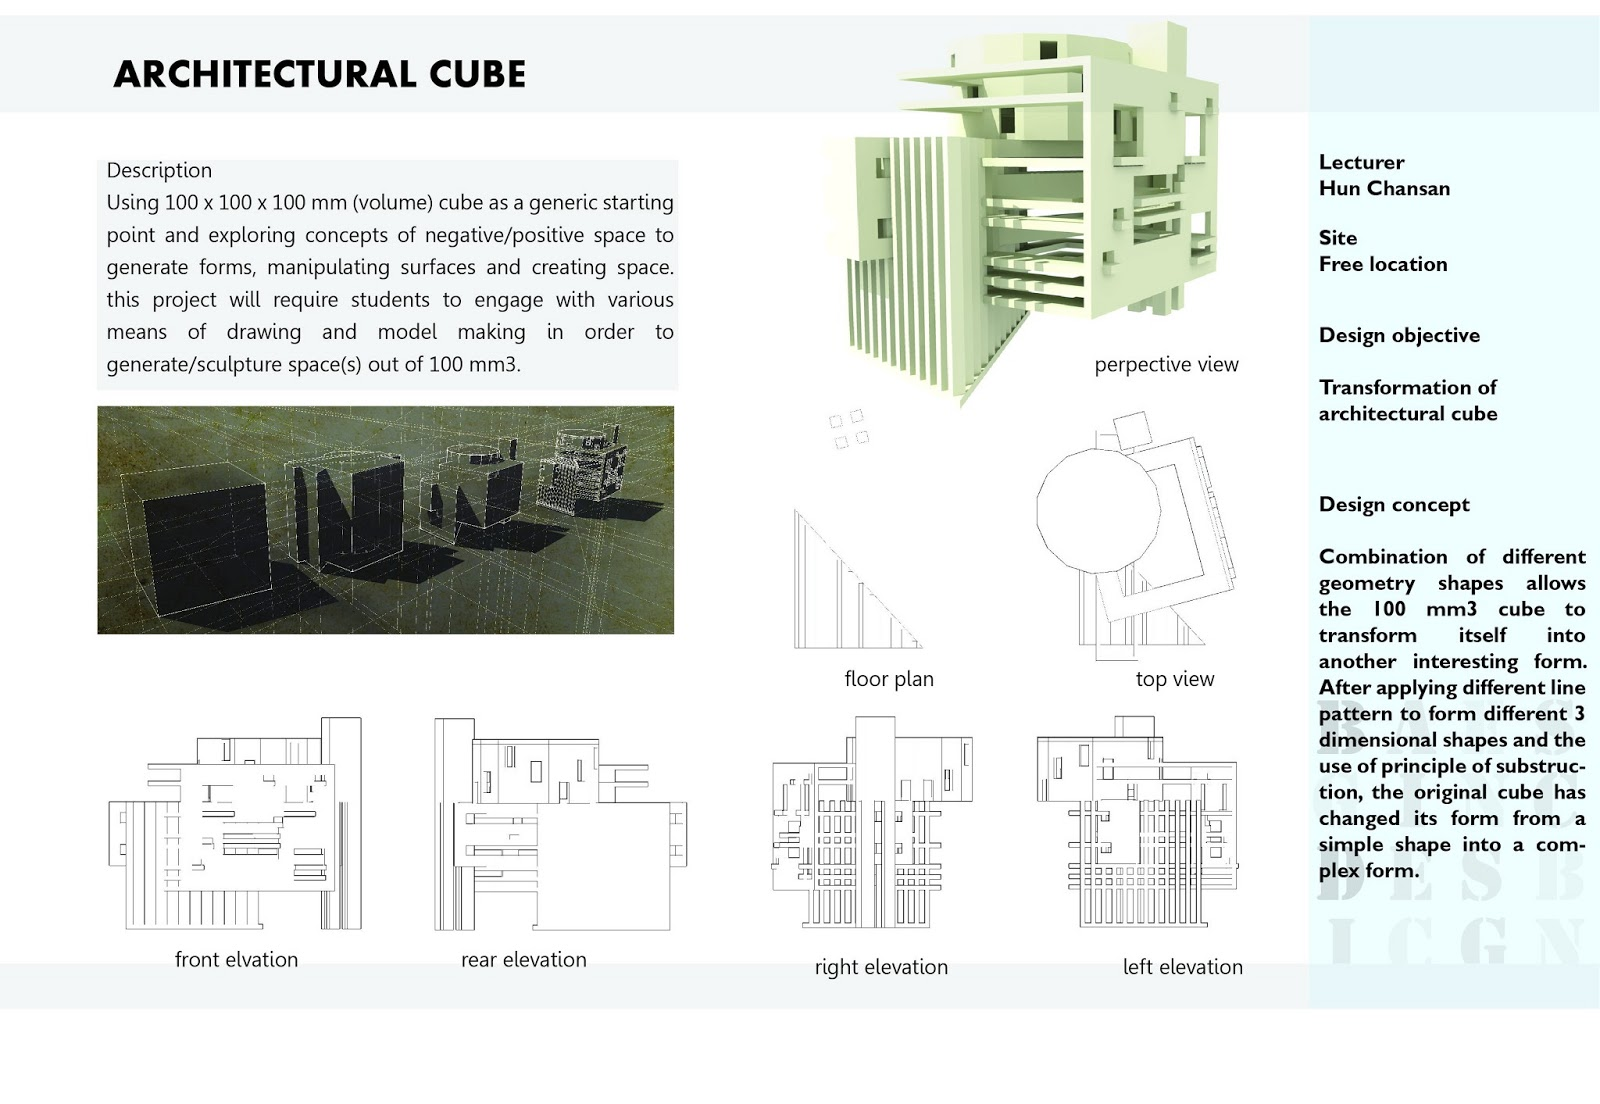 Architectural cube transformation concept design for Various architectural concepts